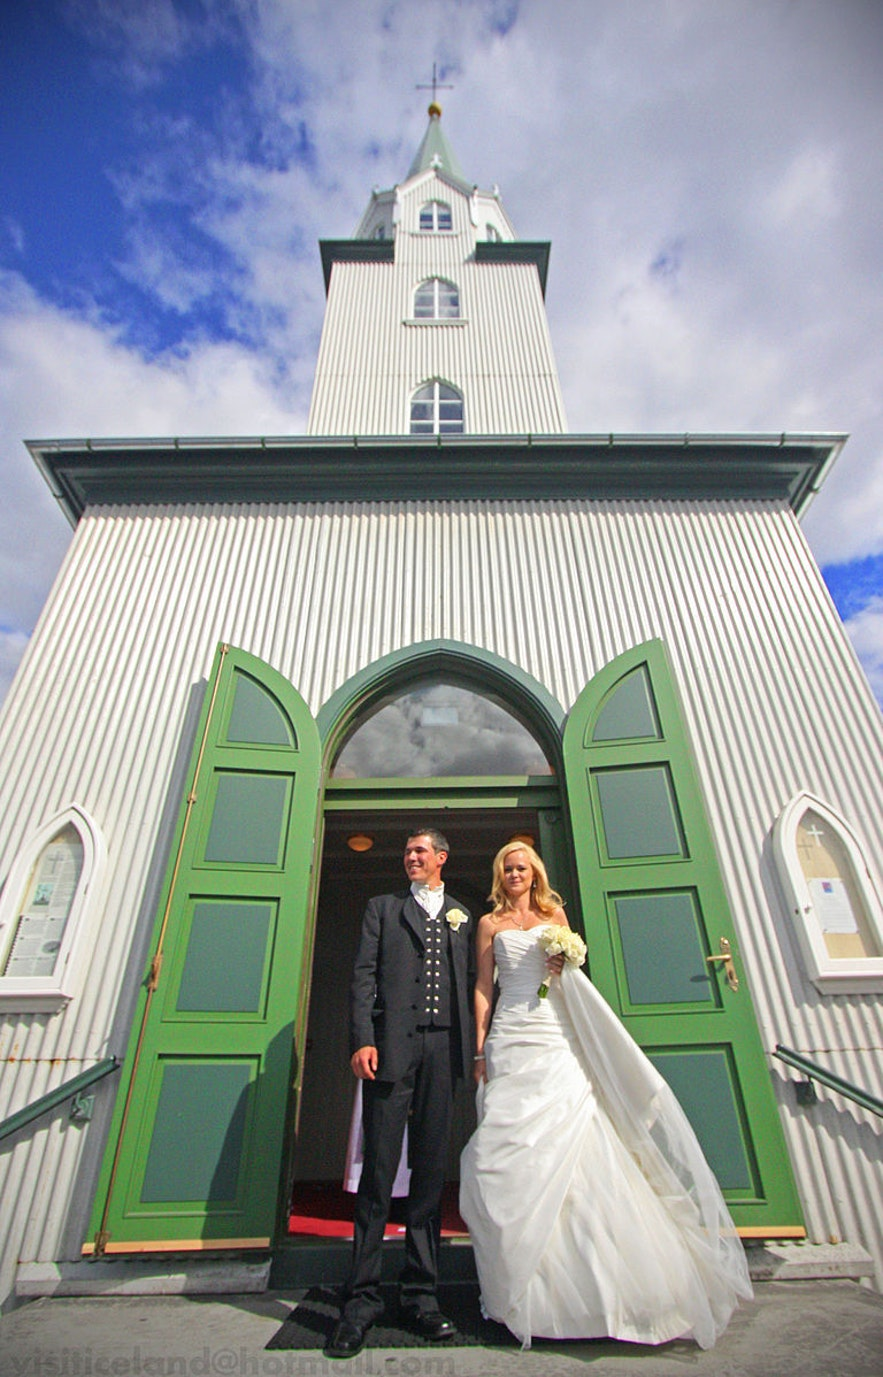 Icelandic summer weddings can be mild and sunny